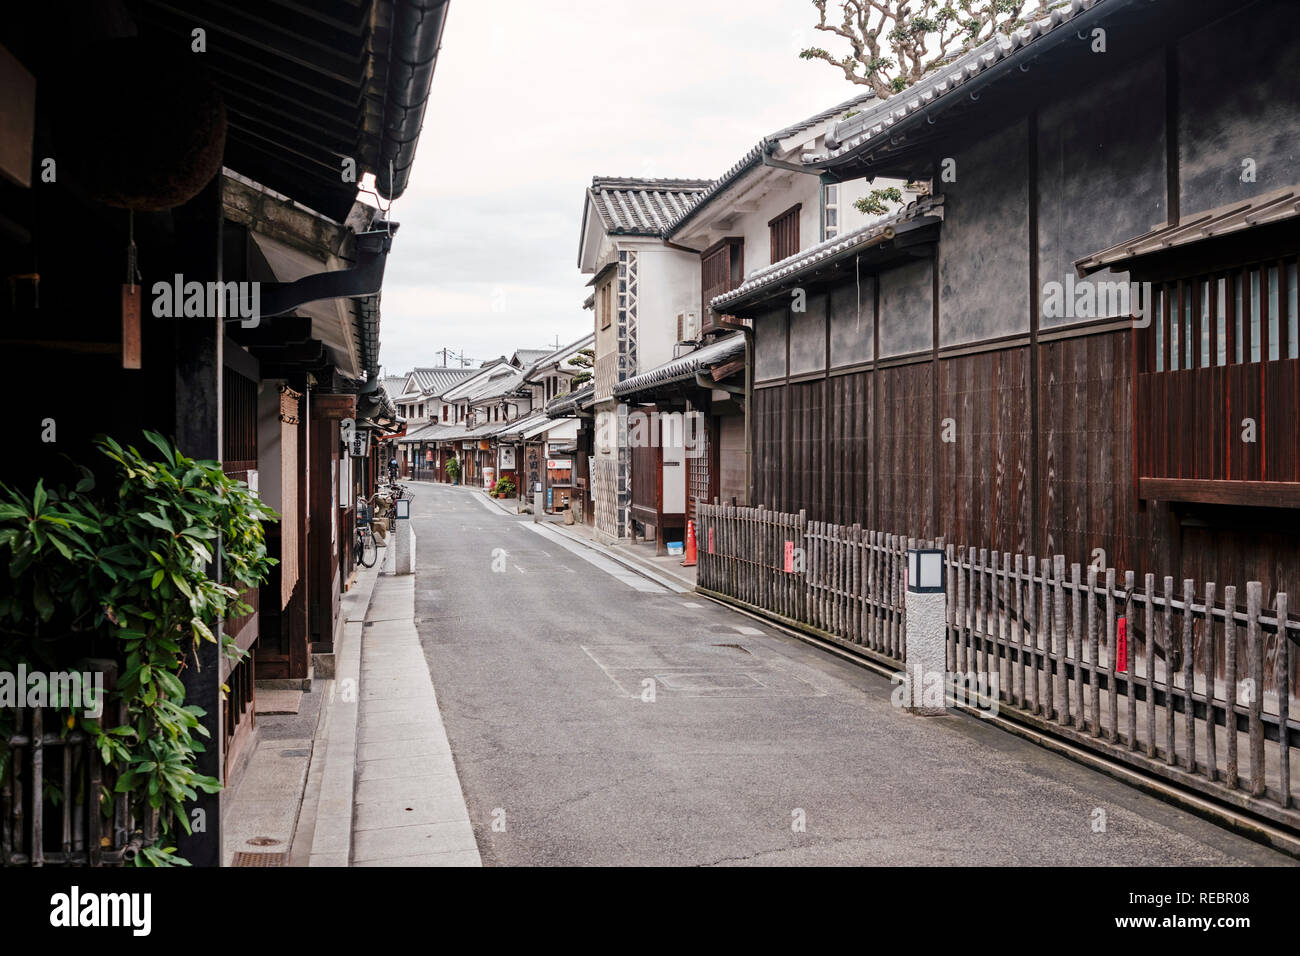 The Bikan historical district in Kurashiki, Japan. Situated just next to Okayama, Kurashiki is one of the few Japanese cities to have preserved a larg - Stock Image